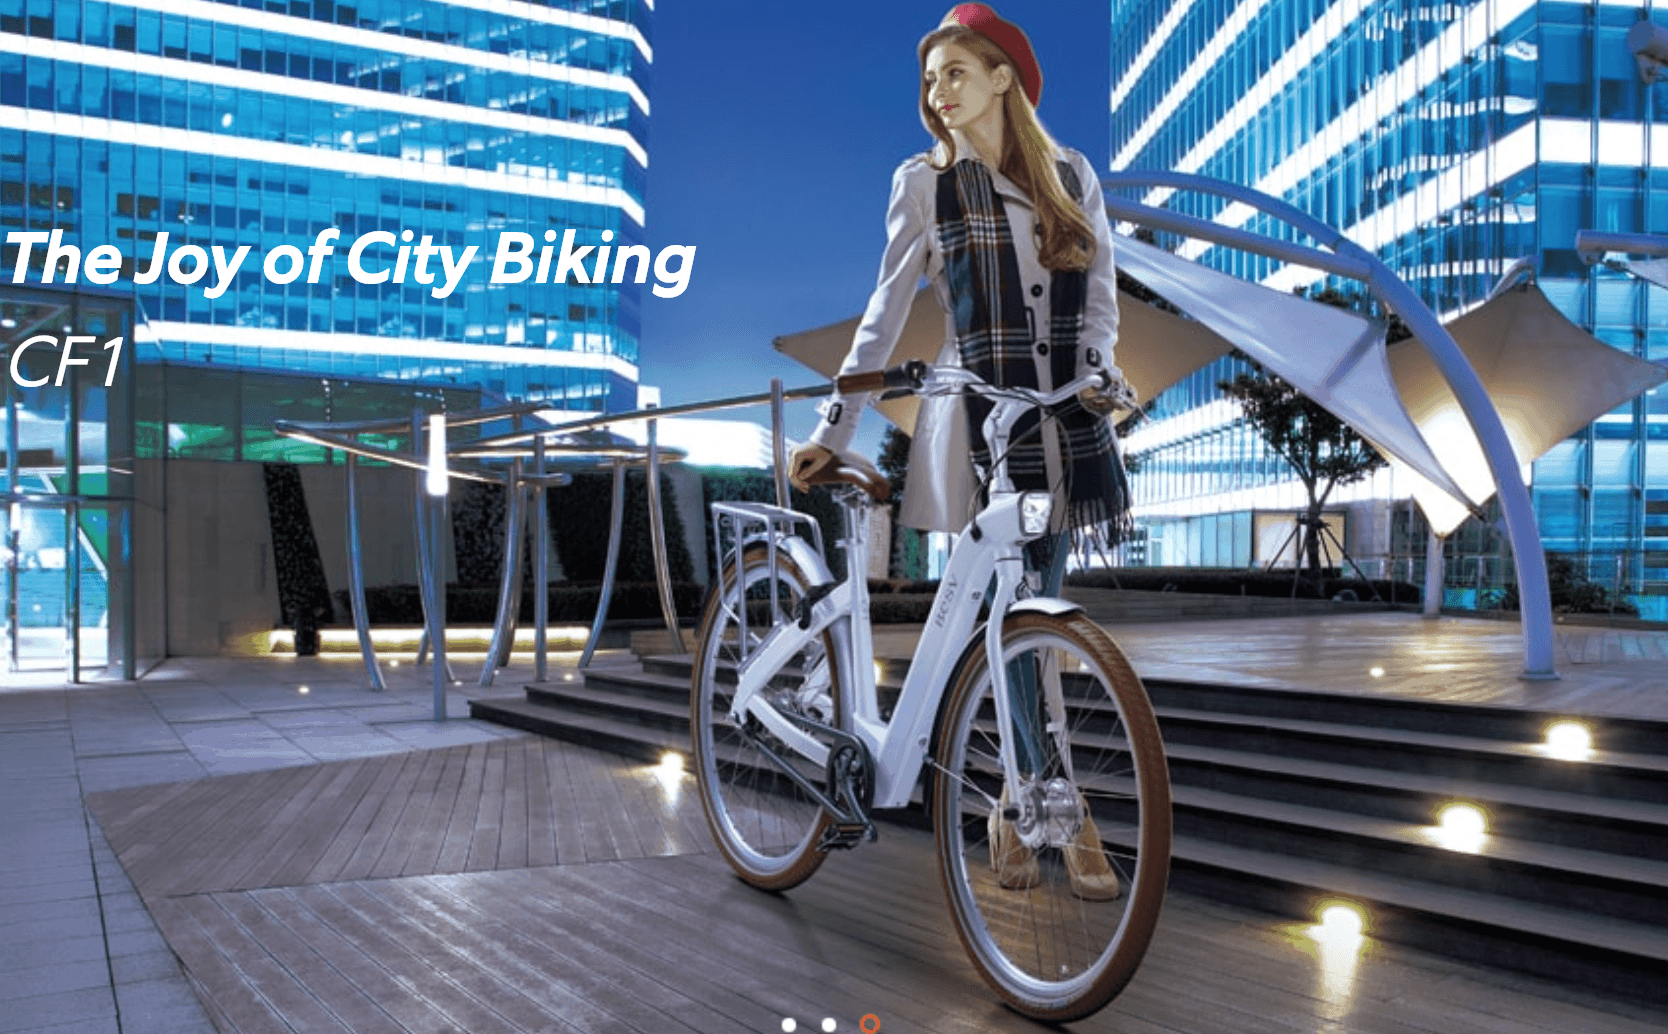 why do people ride electric bikes?